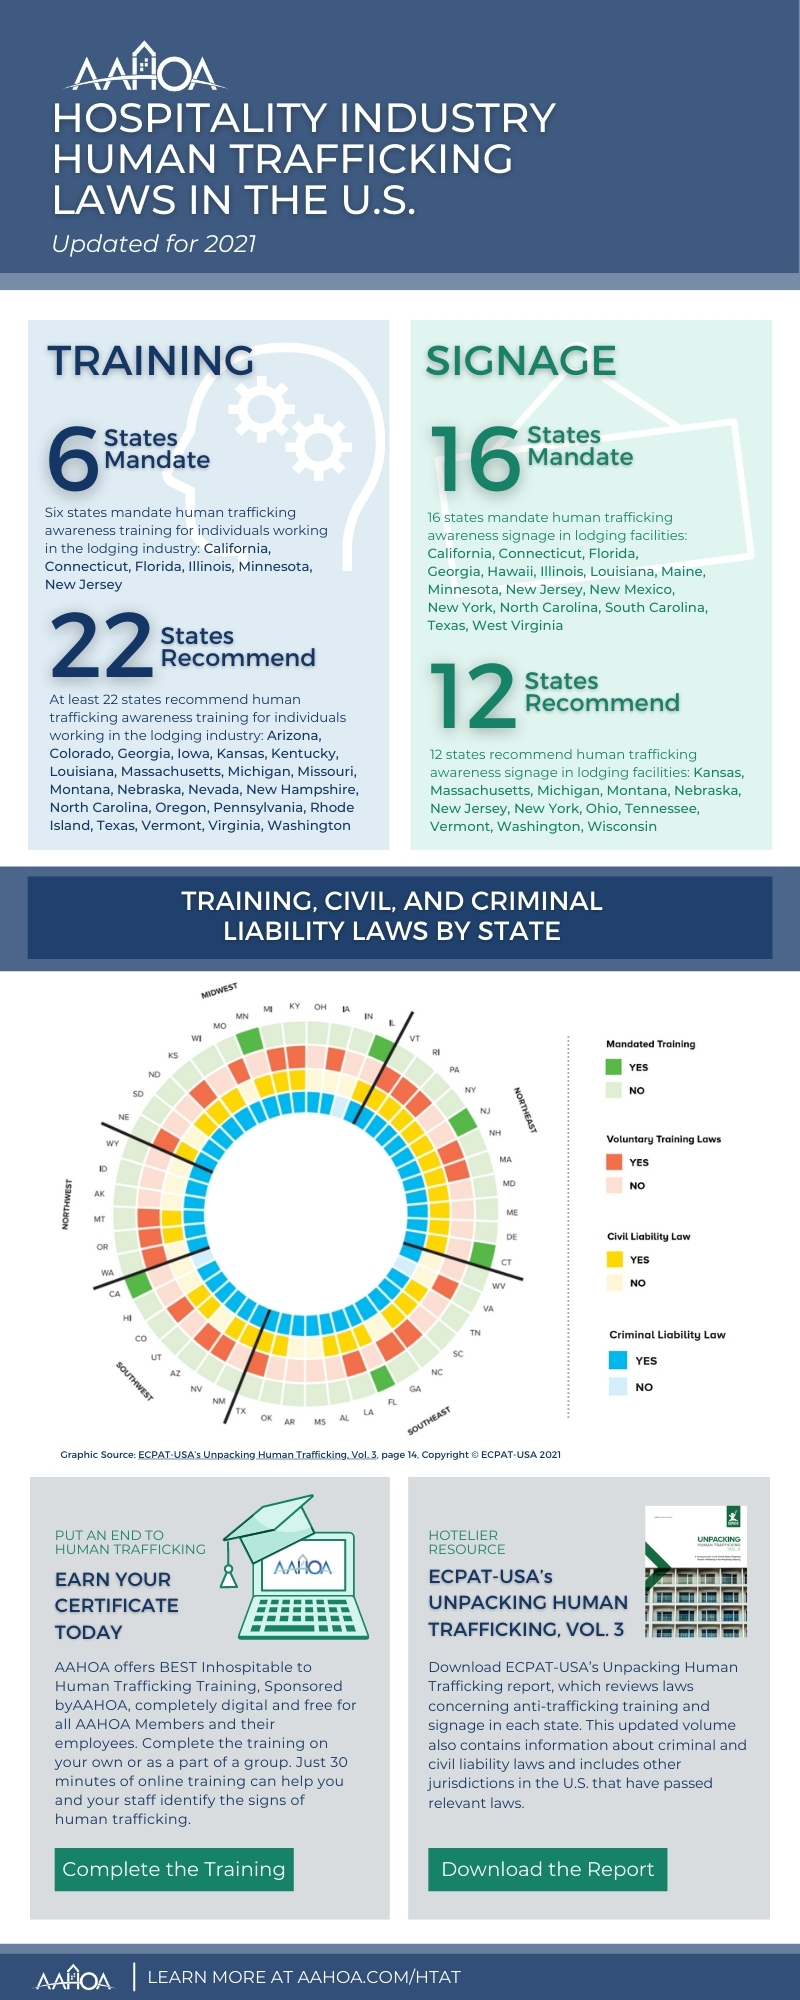 HTAT LAWS INFOGRAPHIC- Final Image